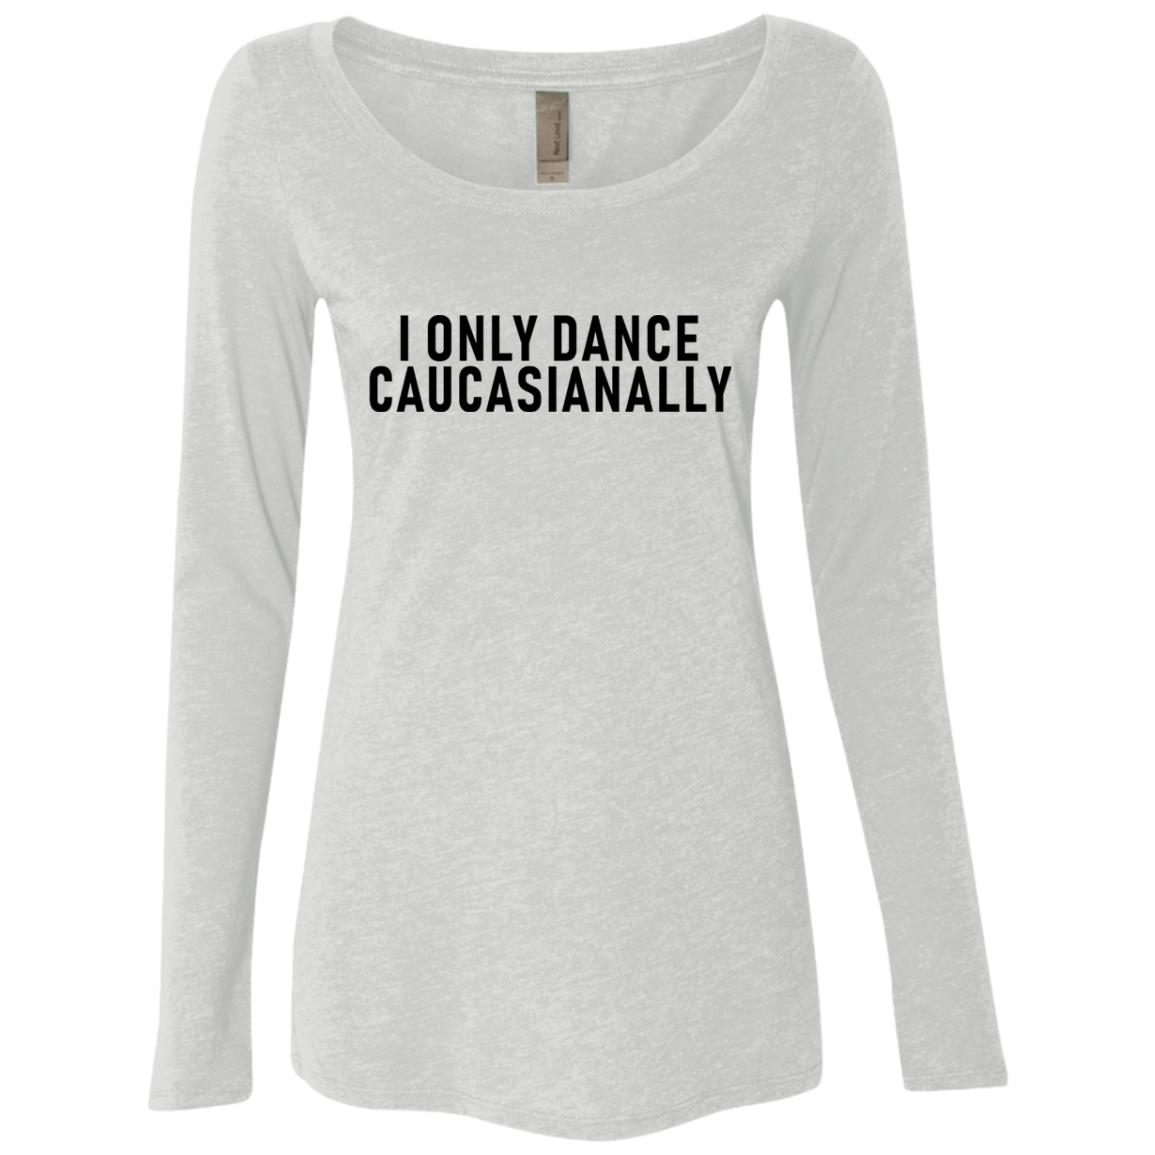 I Only Dance Caucasianally Women's Long Sleeve Tee